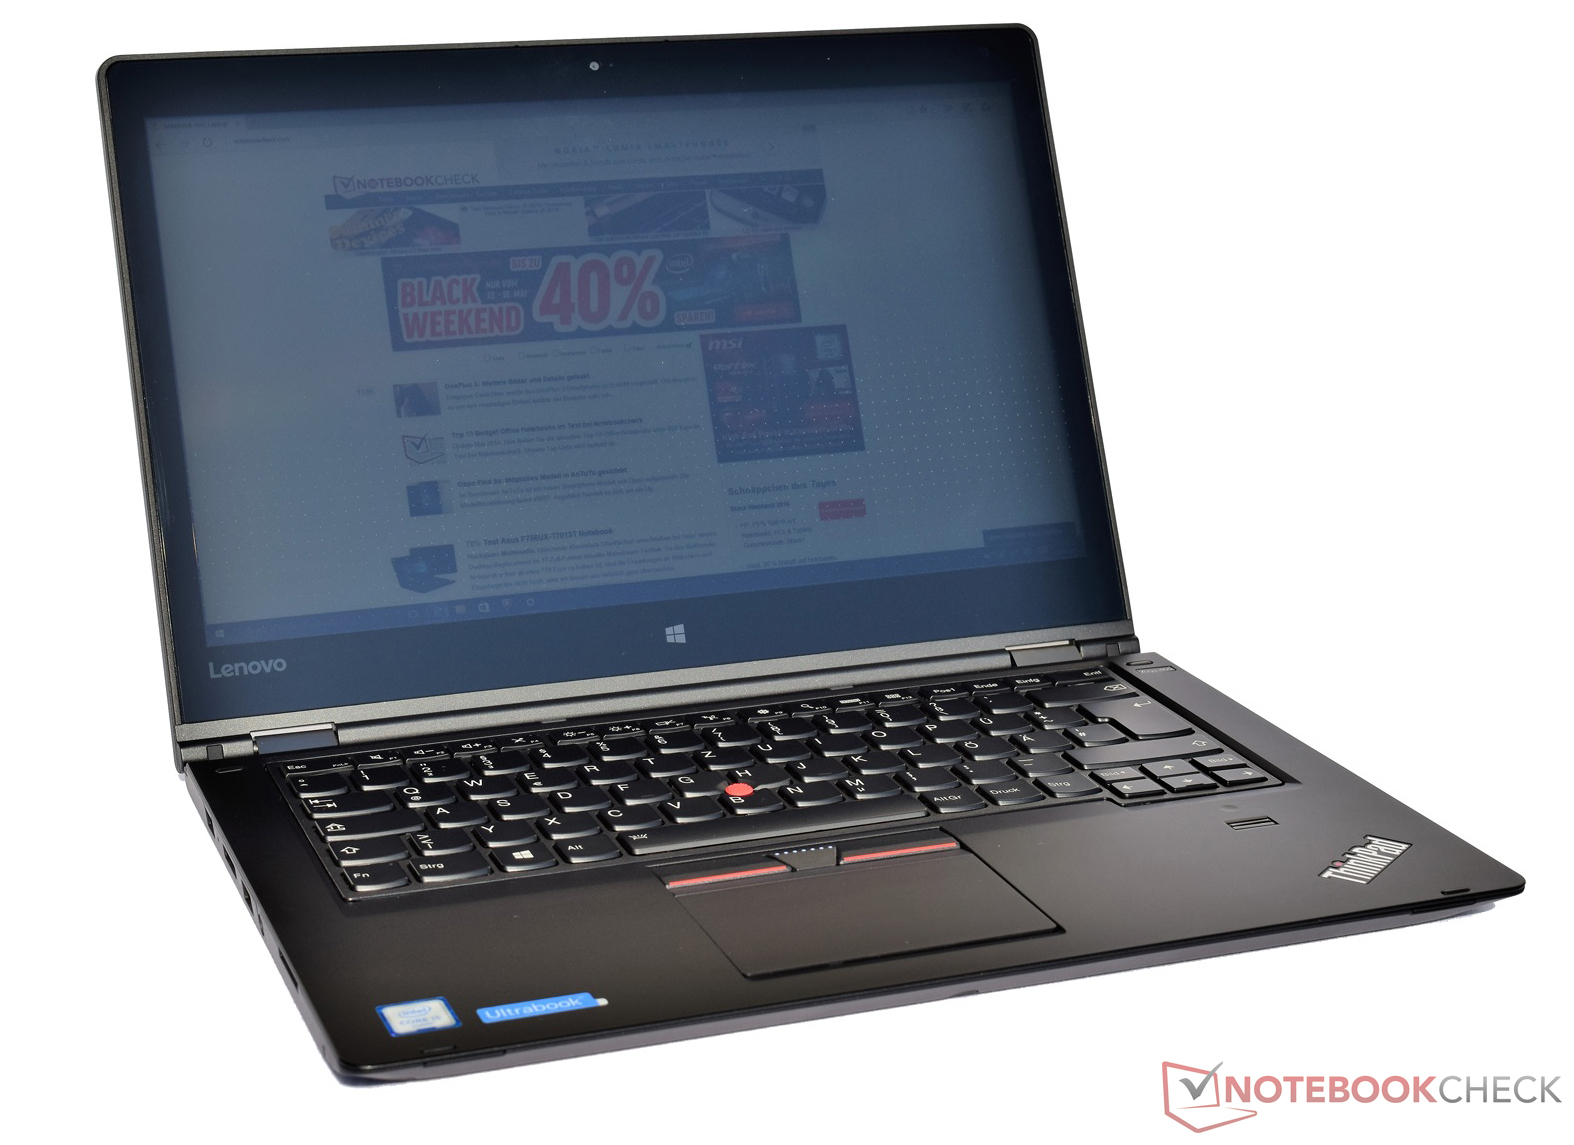 Lenovo ThinkPad Yoga 260 Conexant Audio Driver for PC